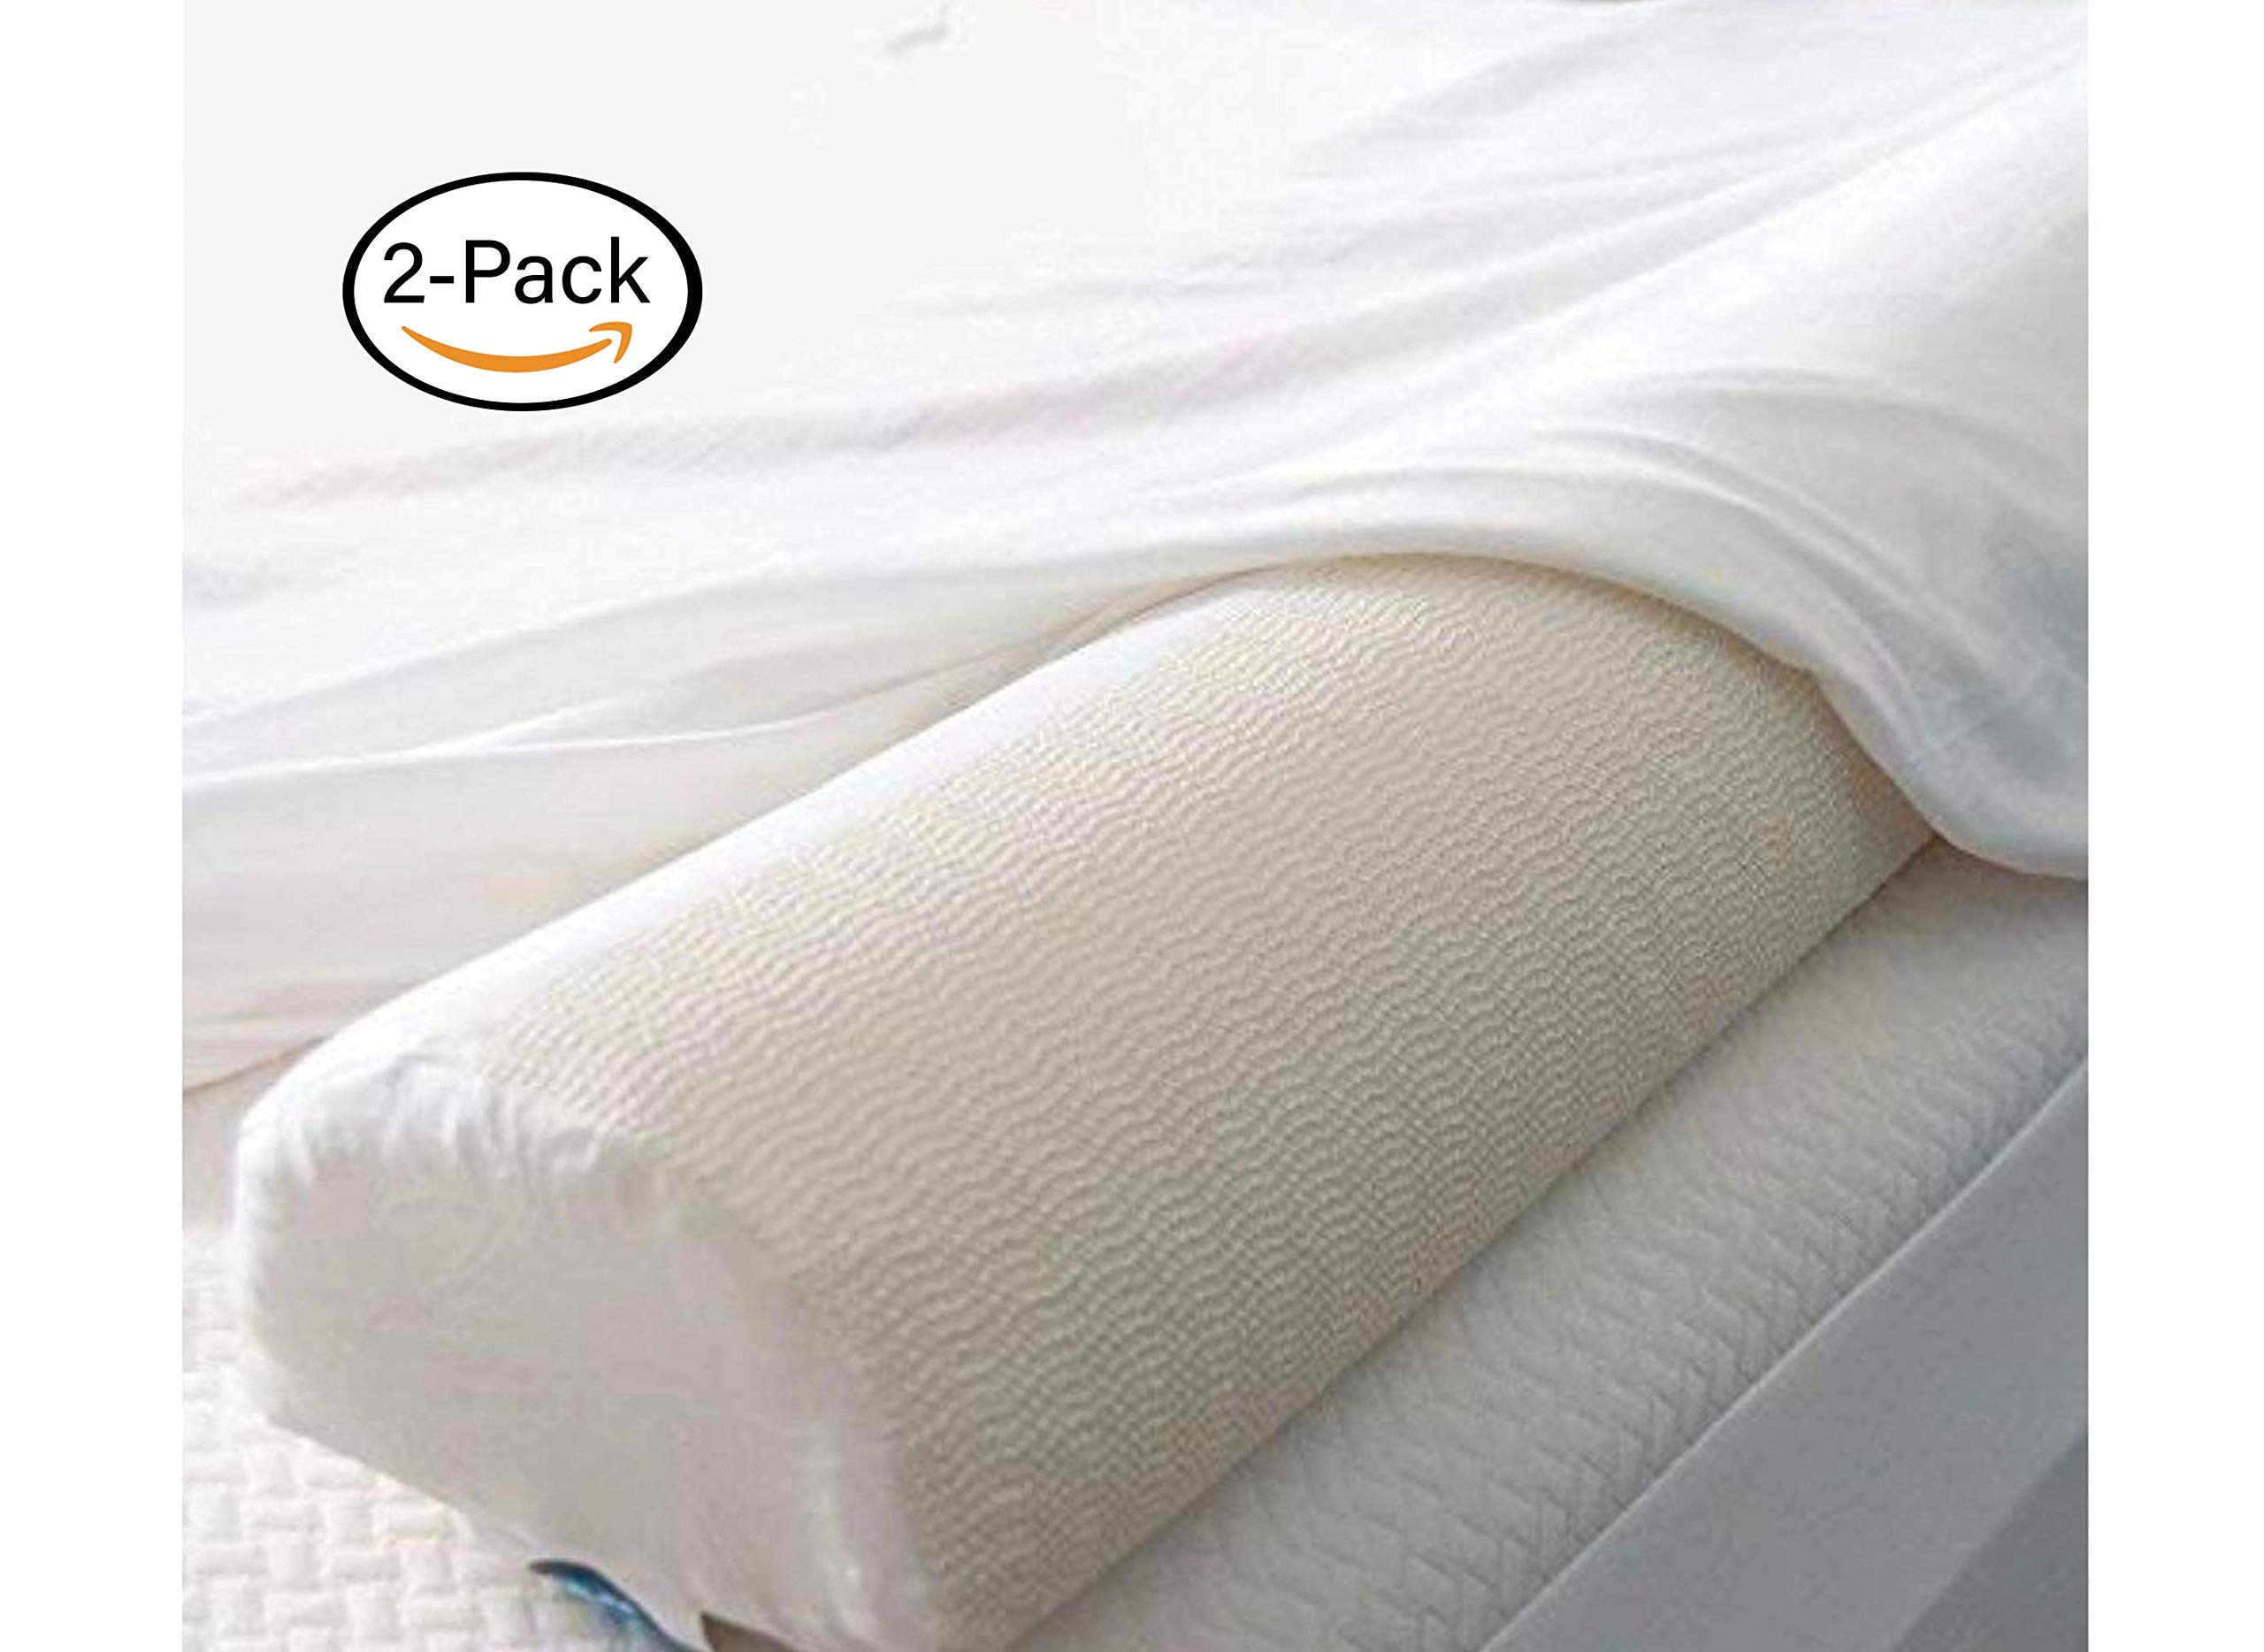 PilloCush. Foam Bumper Rails for Children's Bed. Side Safety Cushion for Bed. Bed Guard Rail. Bed Pillow. Crib Bumper Pillow.[2-Pack]